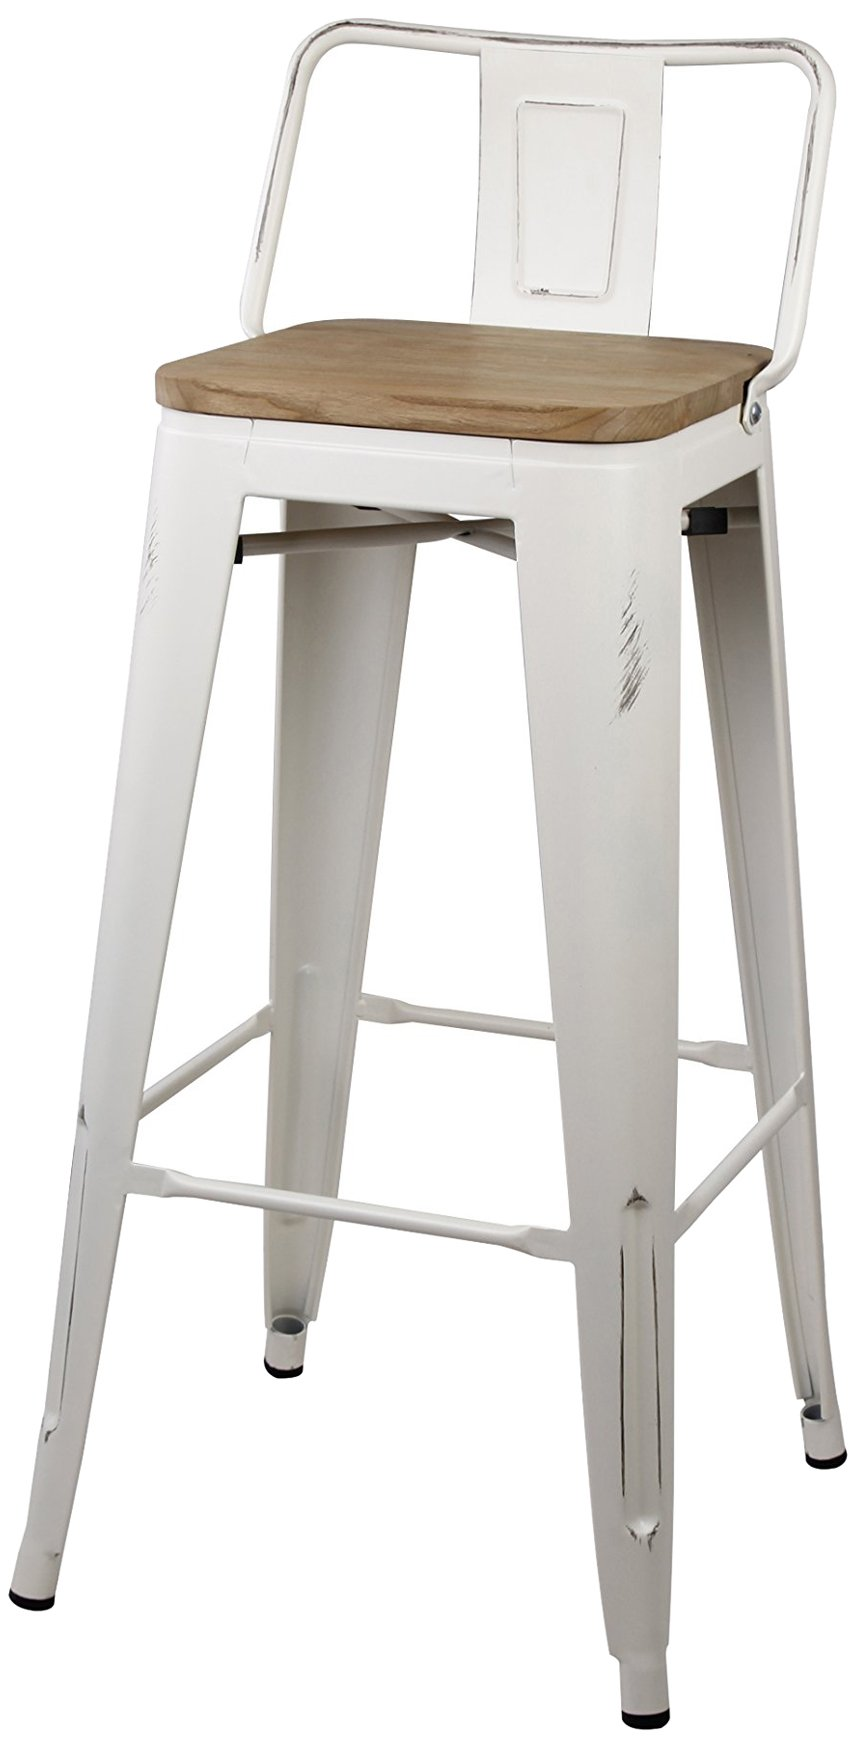 GIA Low Back Metal Barstool with Wooden Seat 30'' Bar Height(1 PACK) - Antique White - Light weight easy assemble and stackable